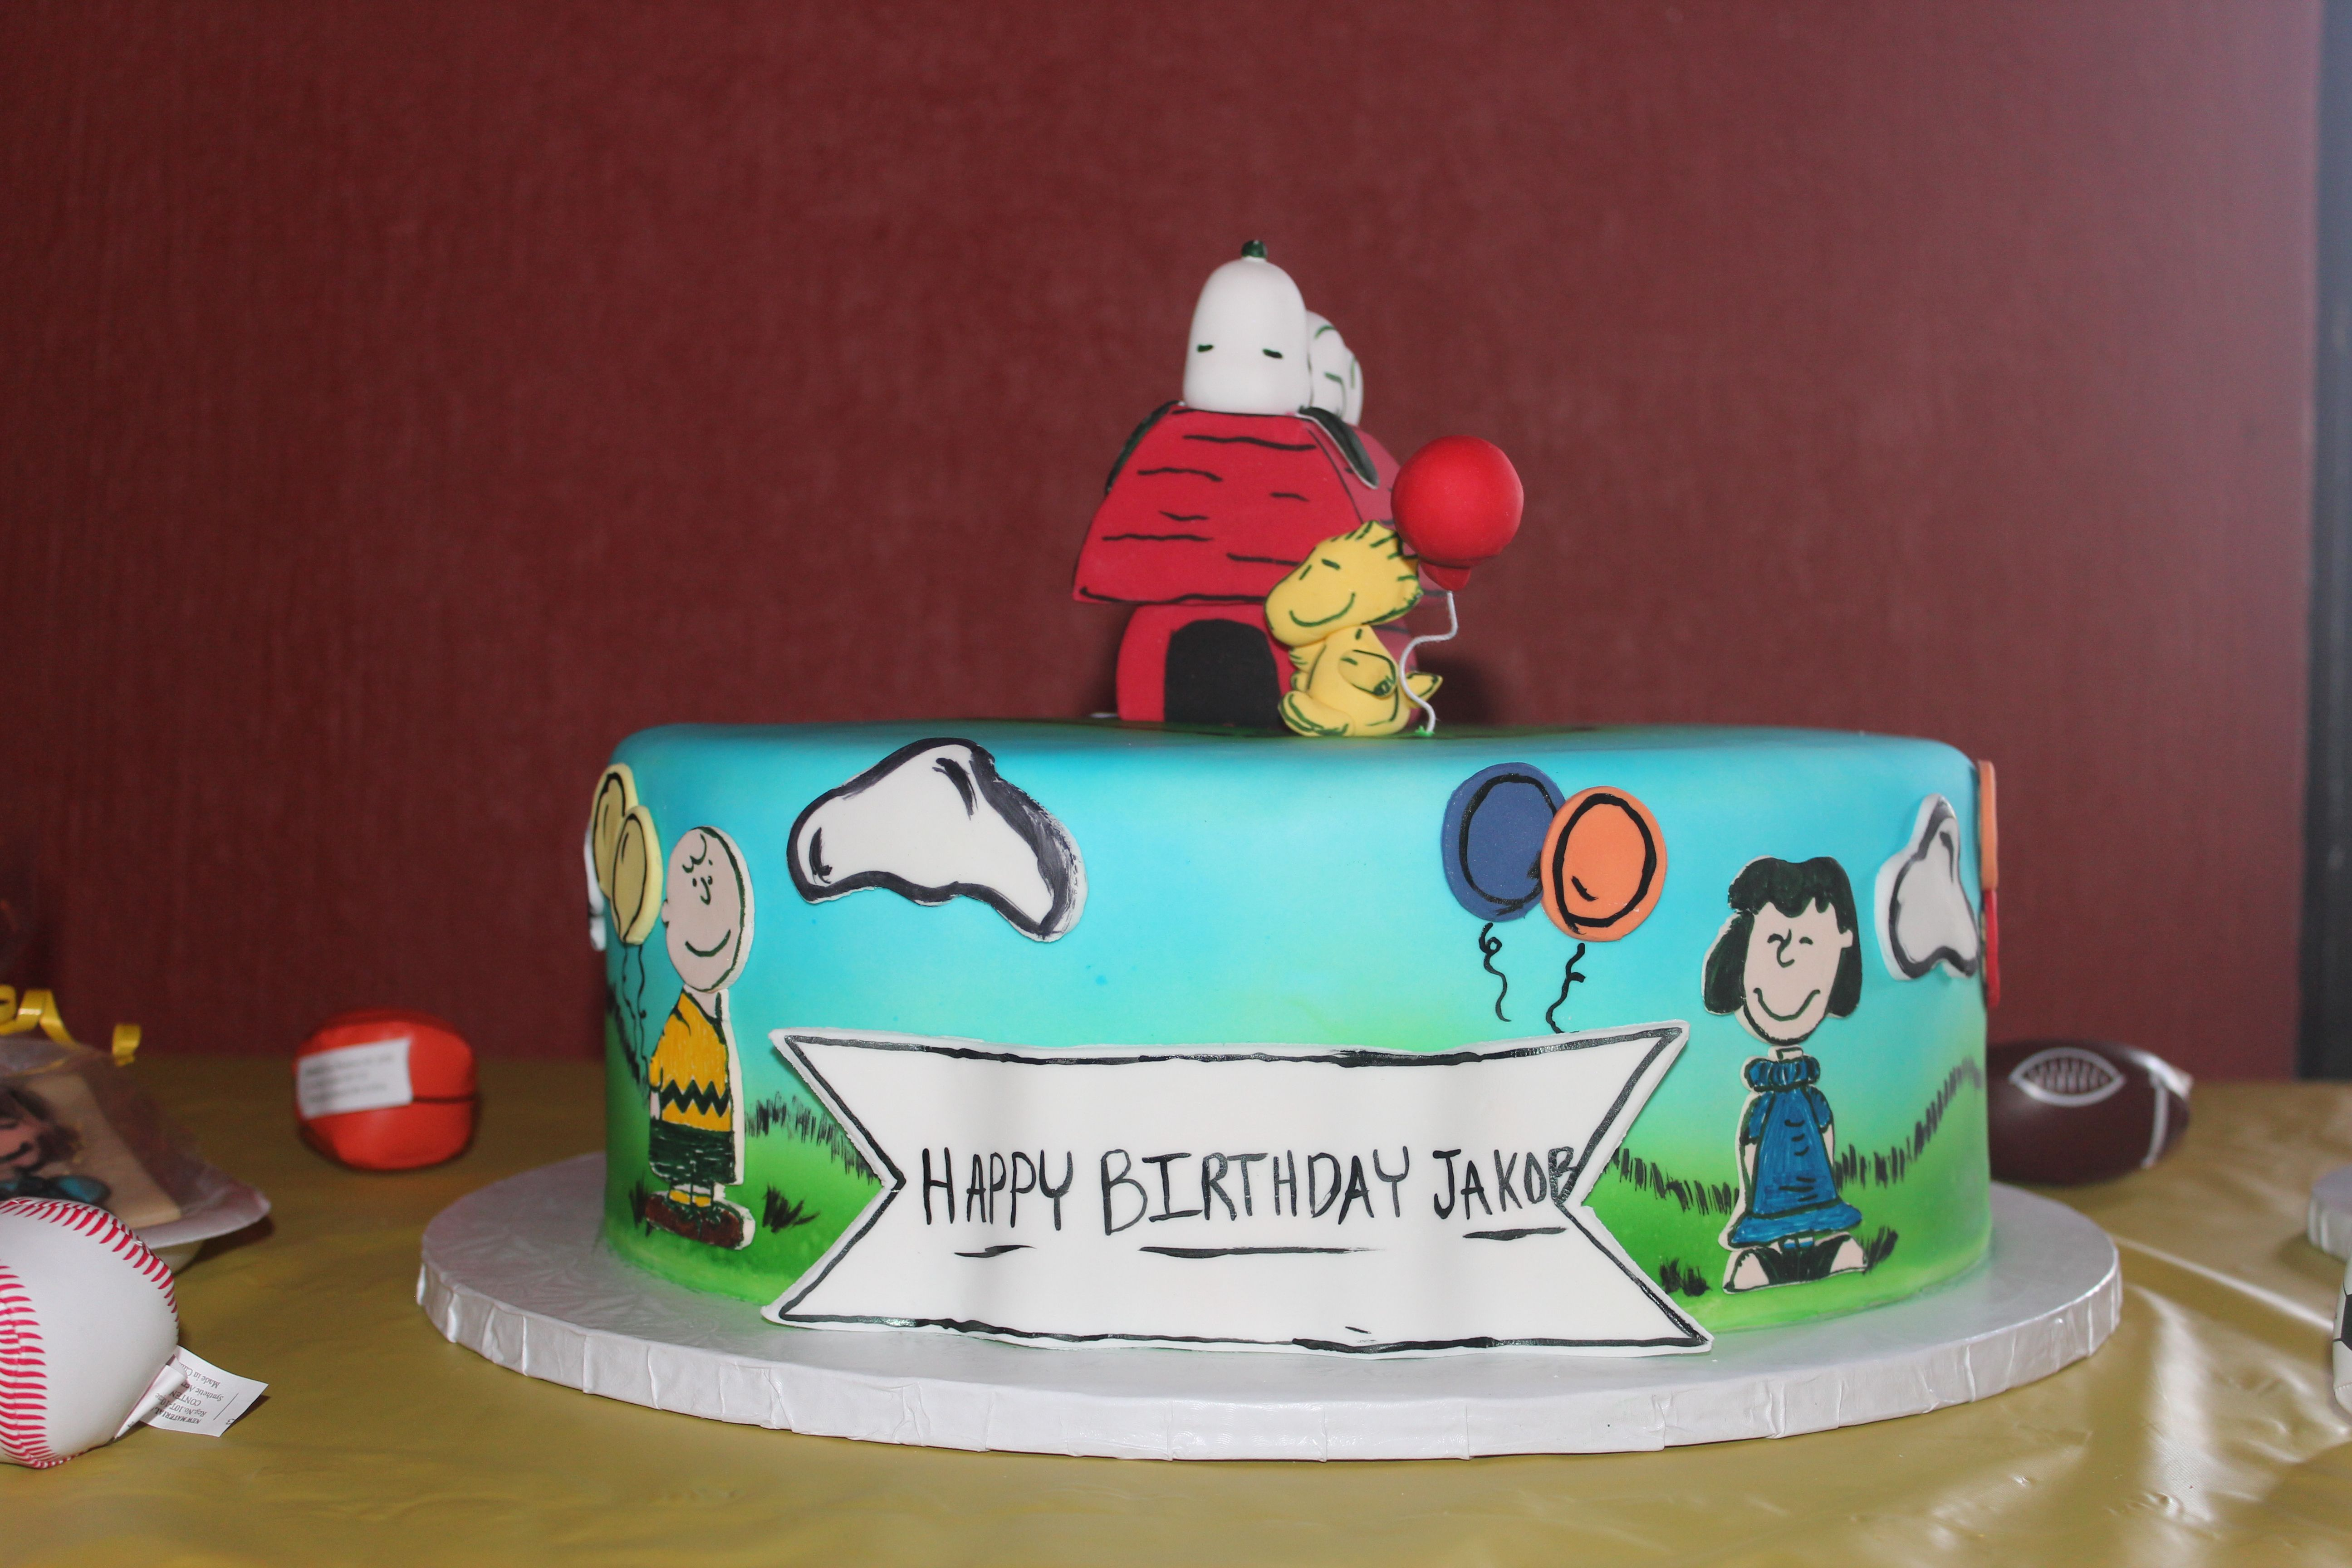 Peanuts characters danced around the cake with Snoopy and Woodstock